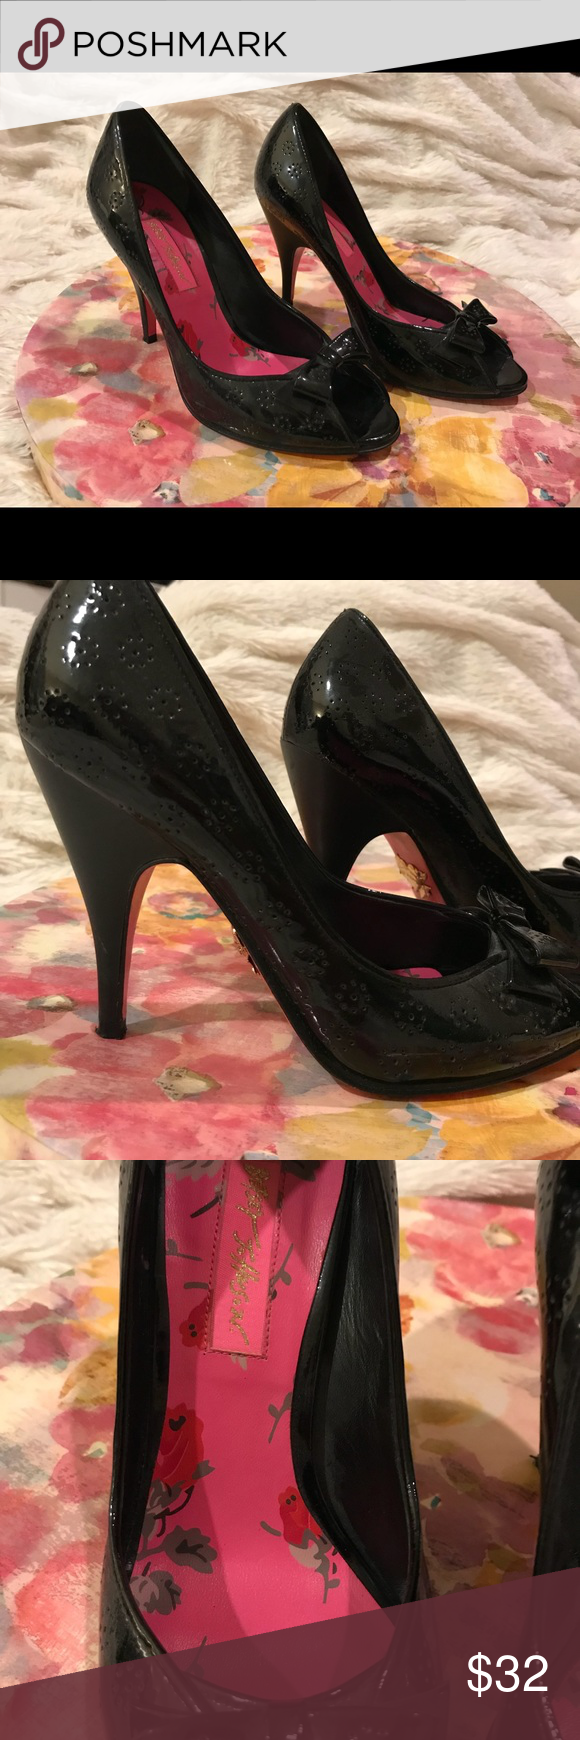 923317b67fe7 Betsy Johnson black patent herls Worn once for shoe fashion show. Patent  leather. 3 inch heel Betsey Johnson Shoes Heels